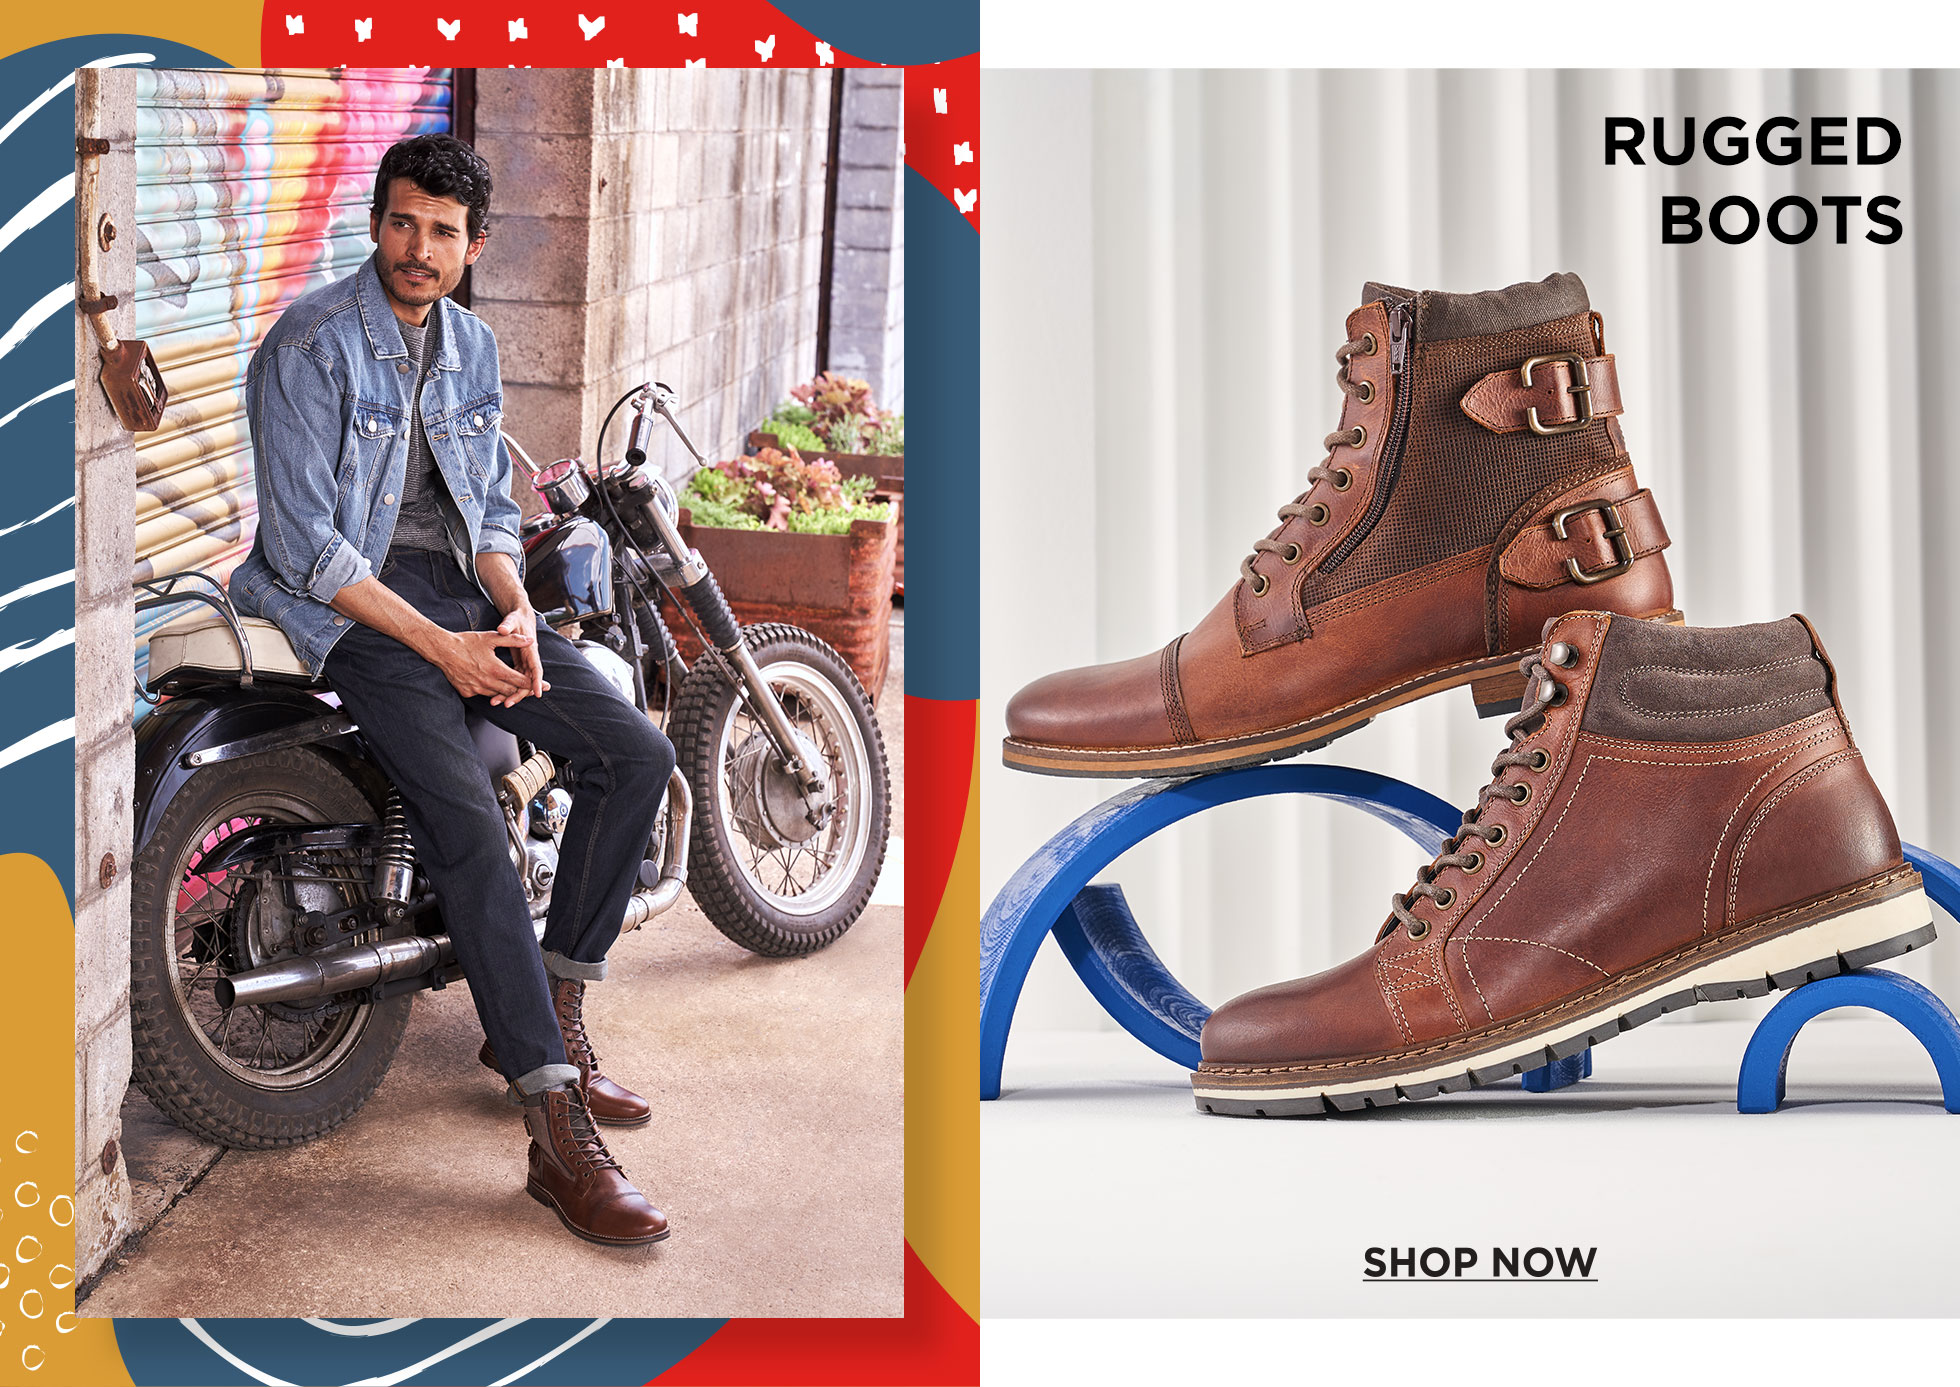 Rugged Boots: Shop Now